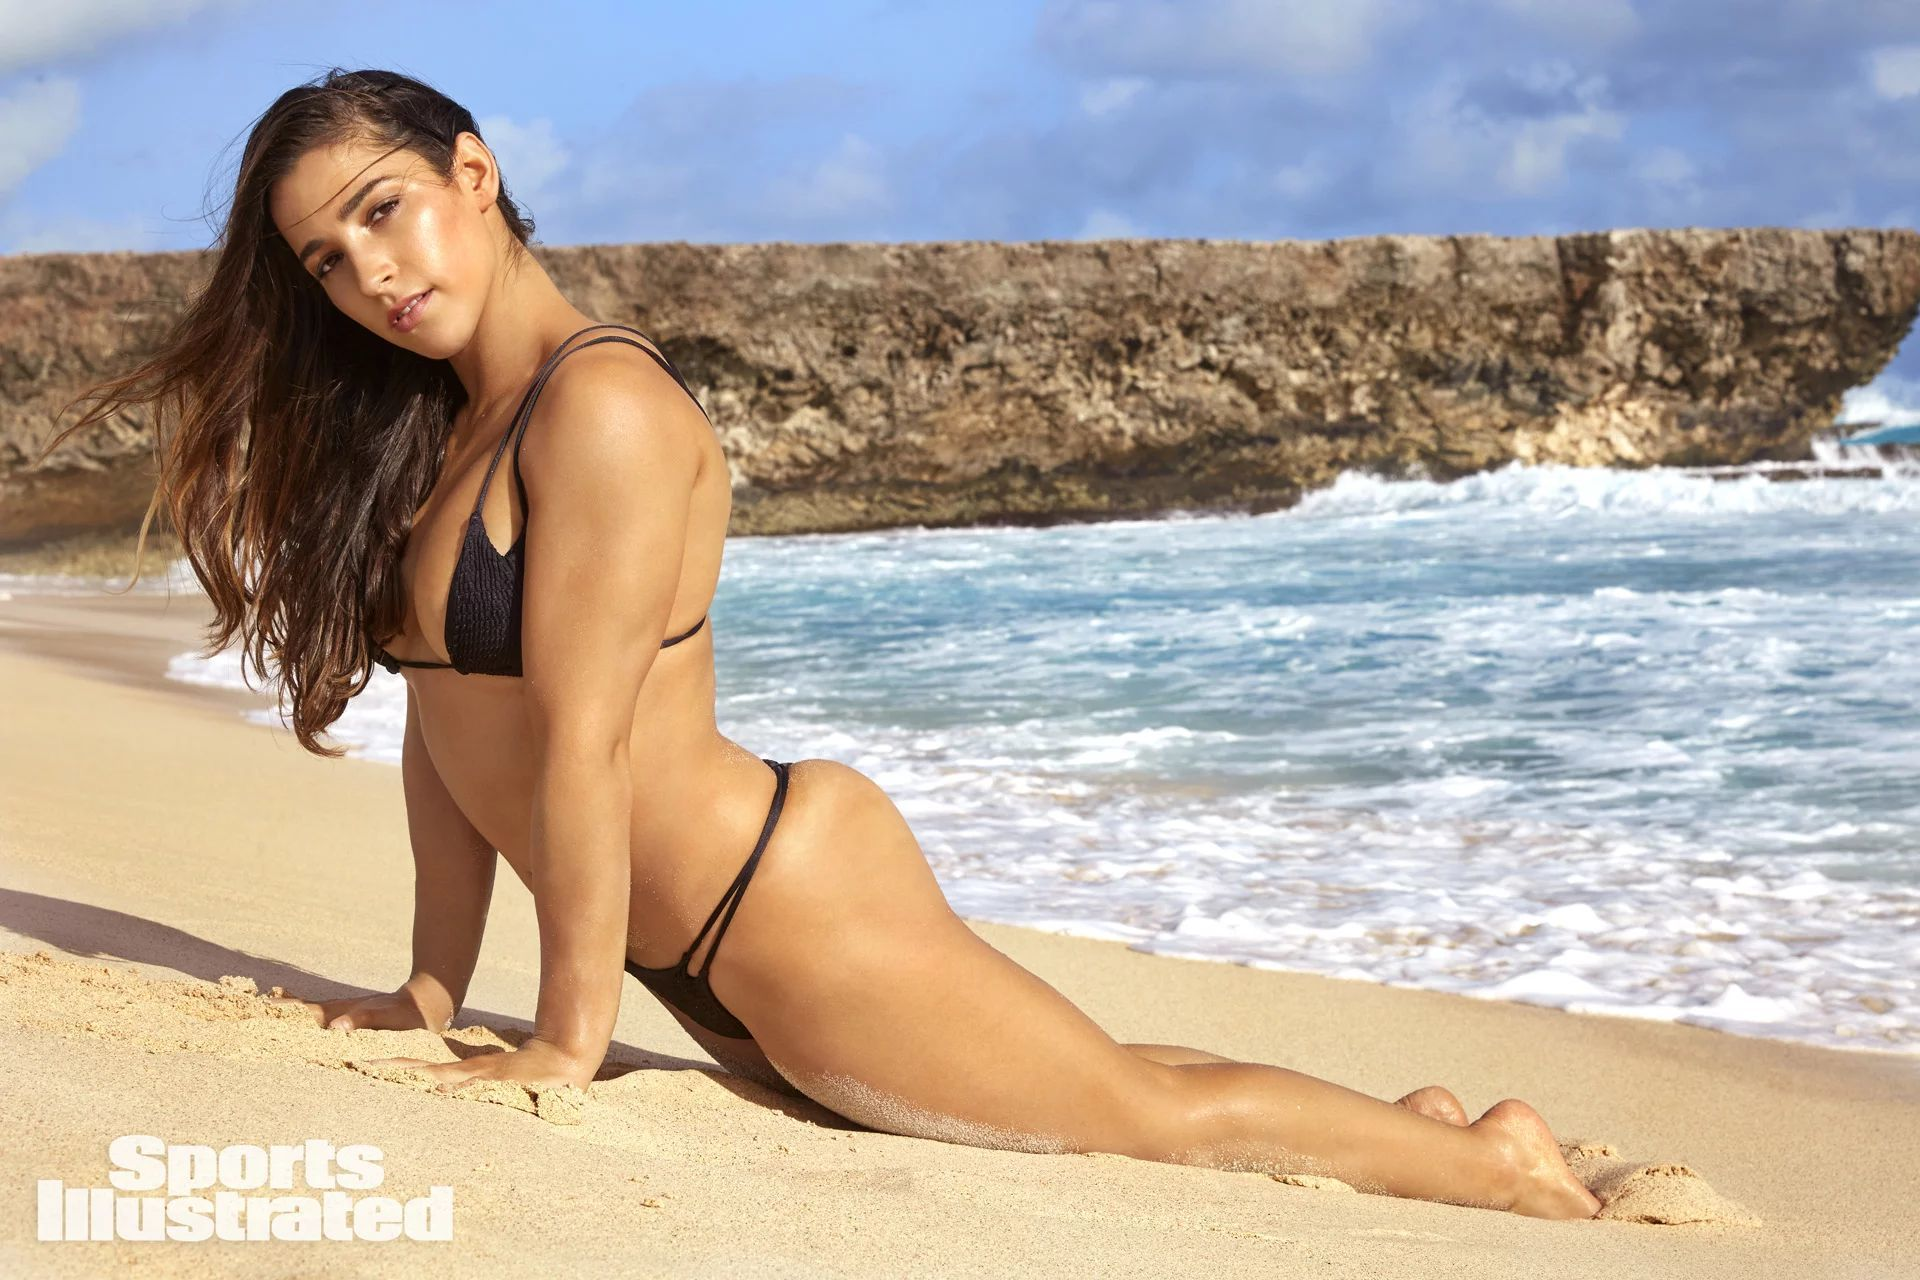 Aly Raisman hot in beach